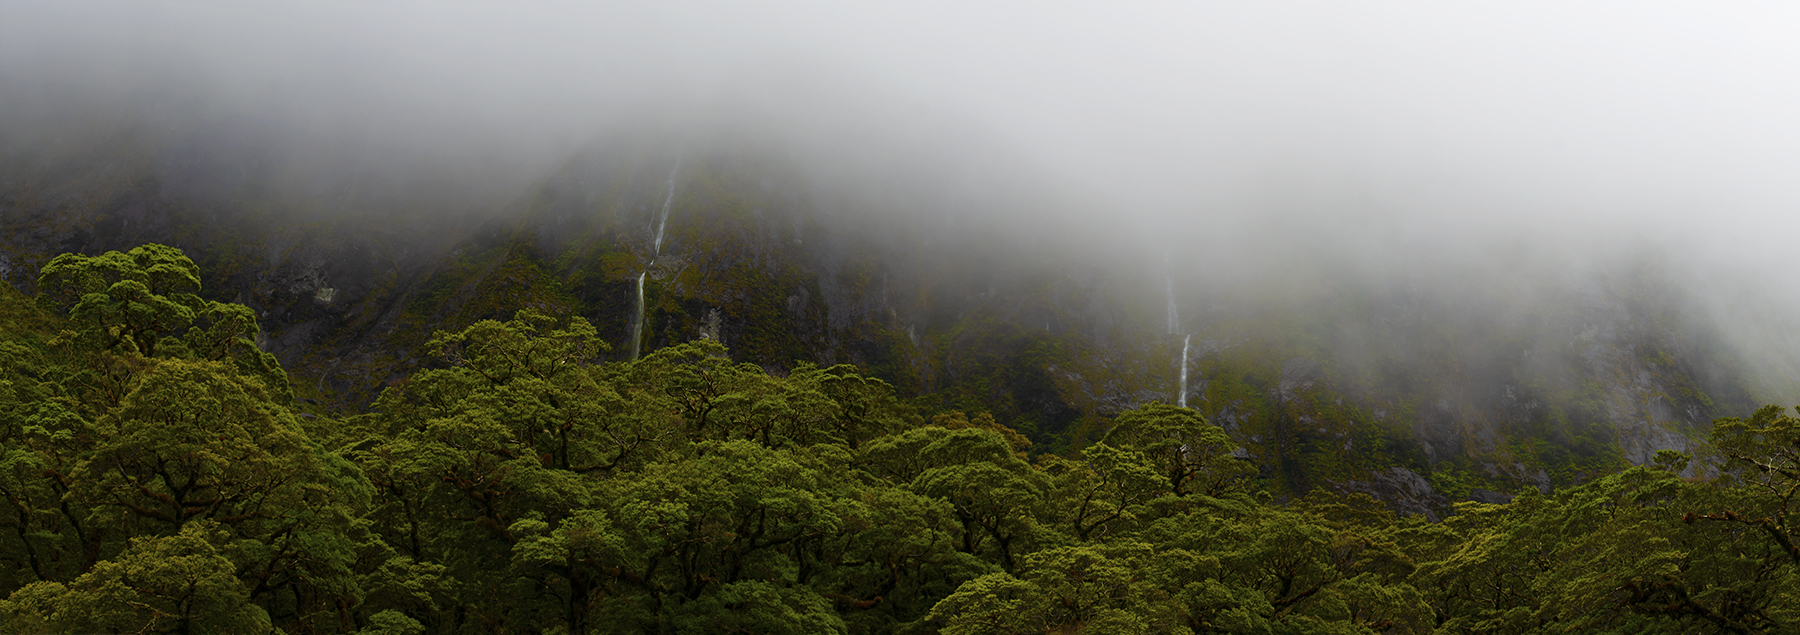 Misty Moods, Fiordland. A Limited Edition Fine Art Landscape Photograph by Richard Hume